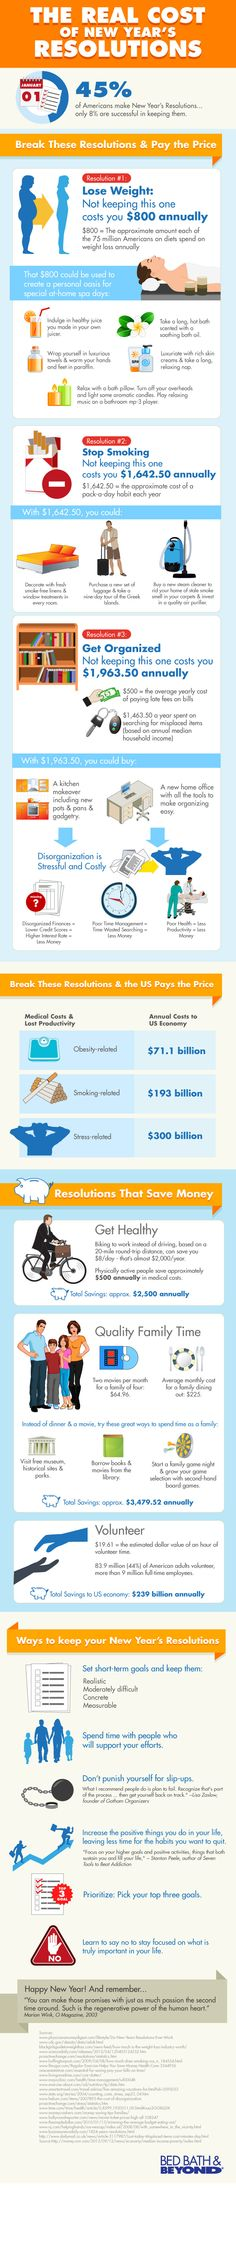 The Real Cost of New Year's Resolutions #Infographic